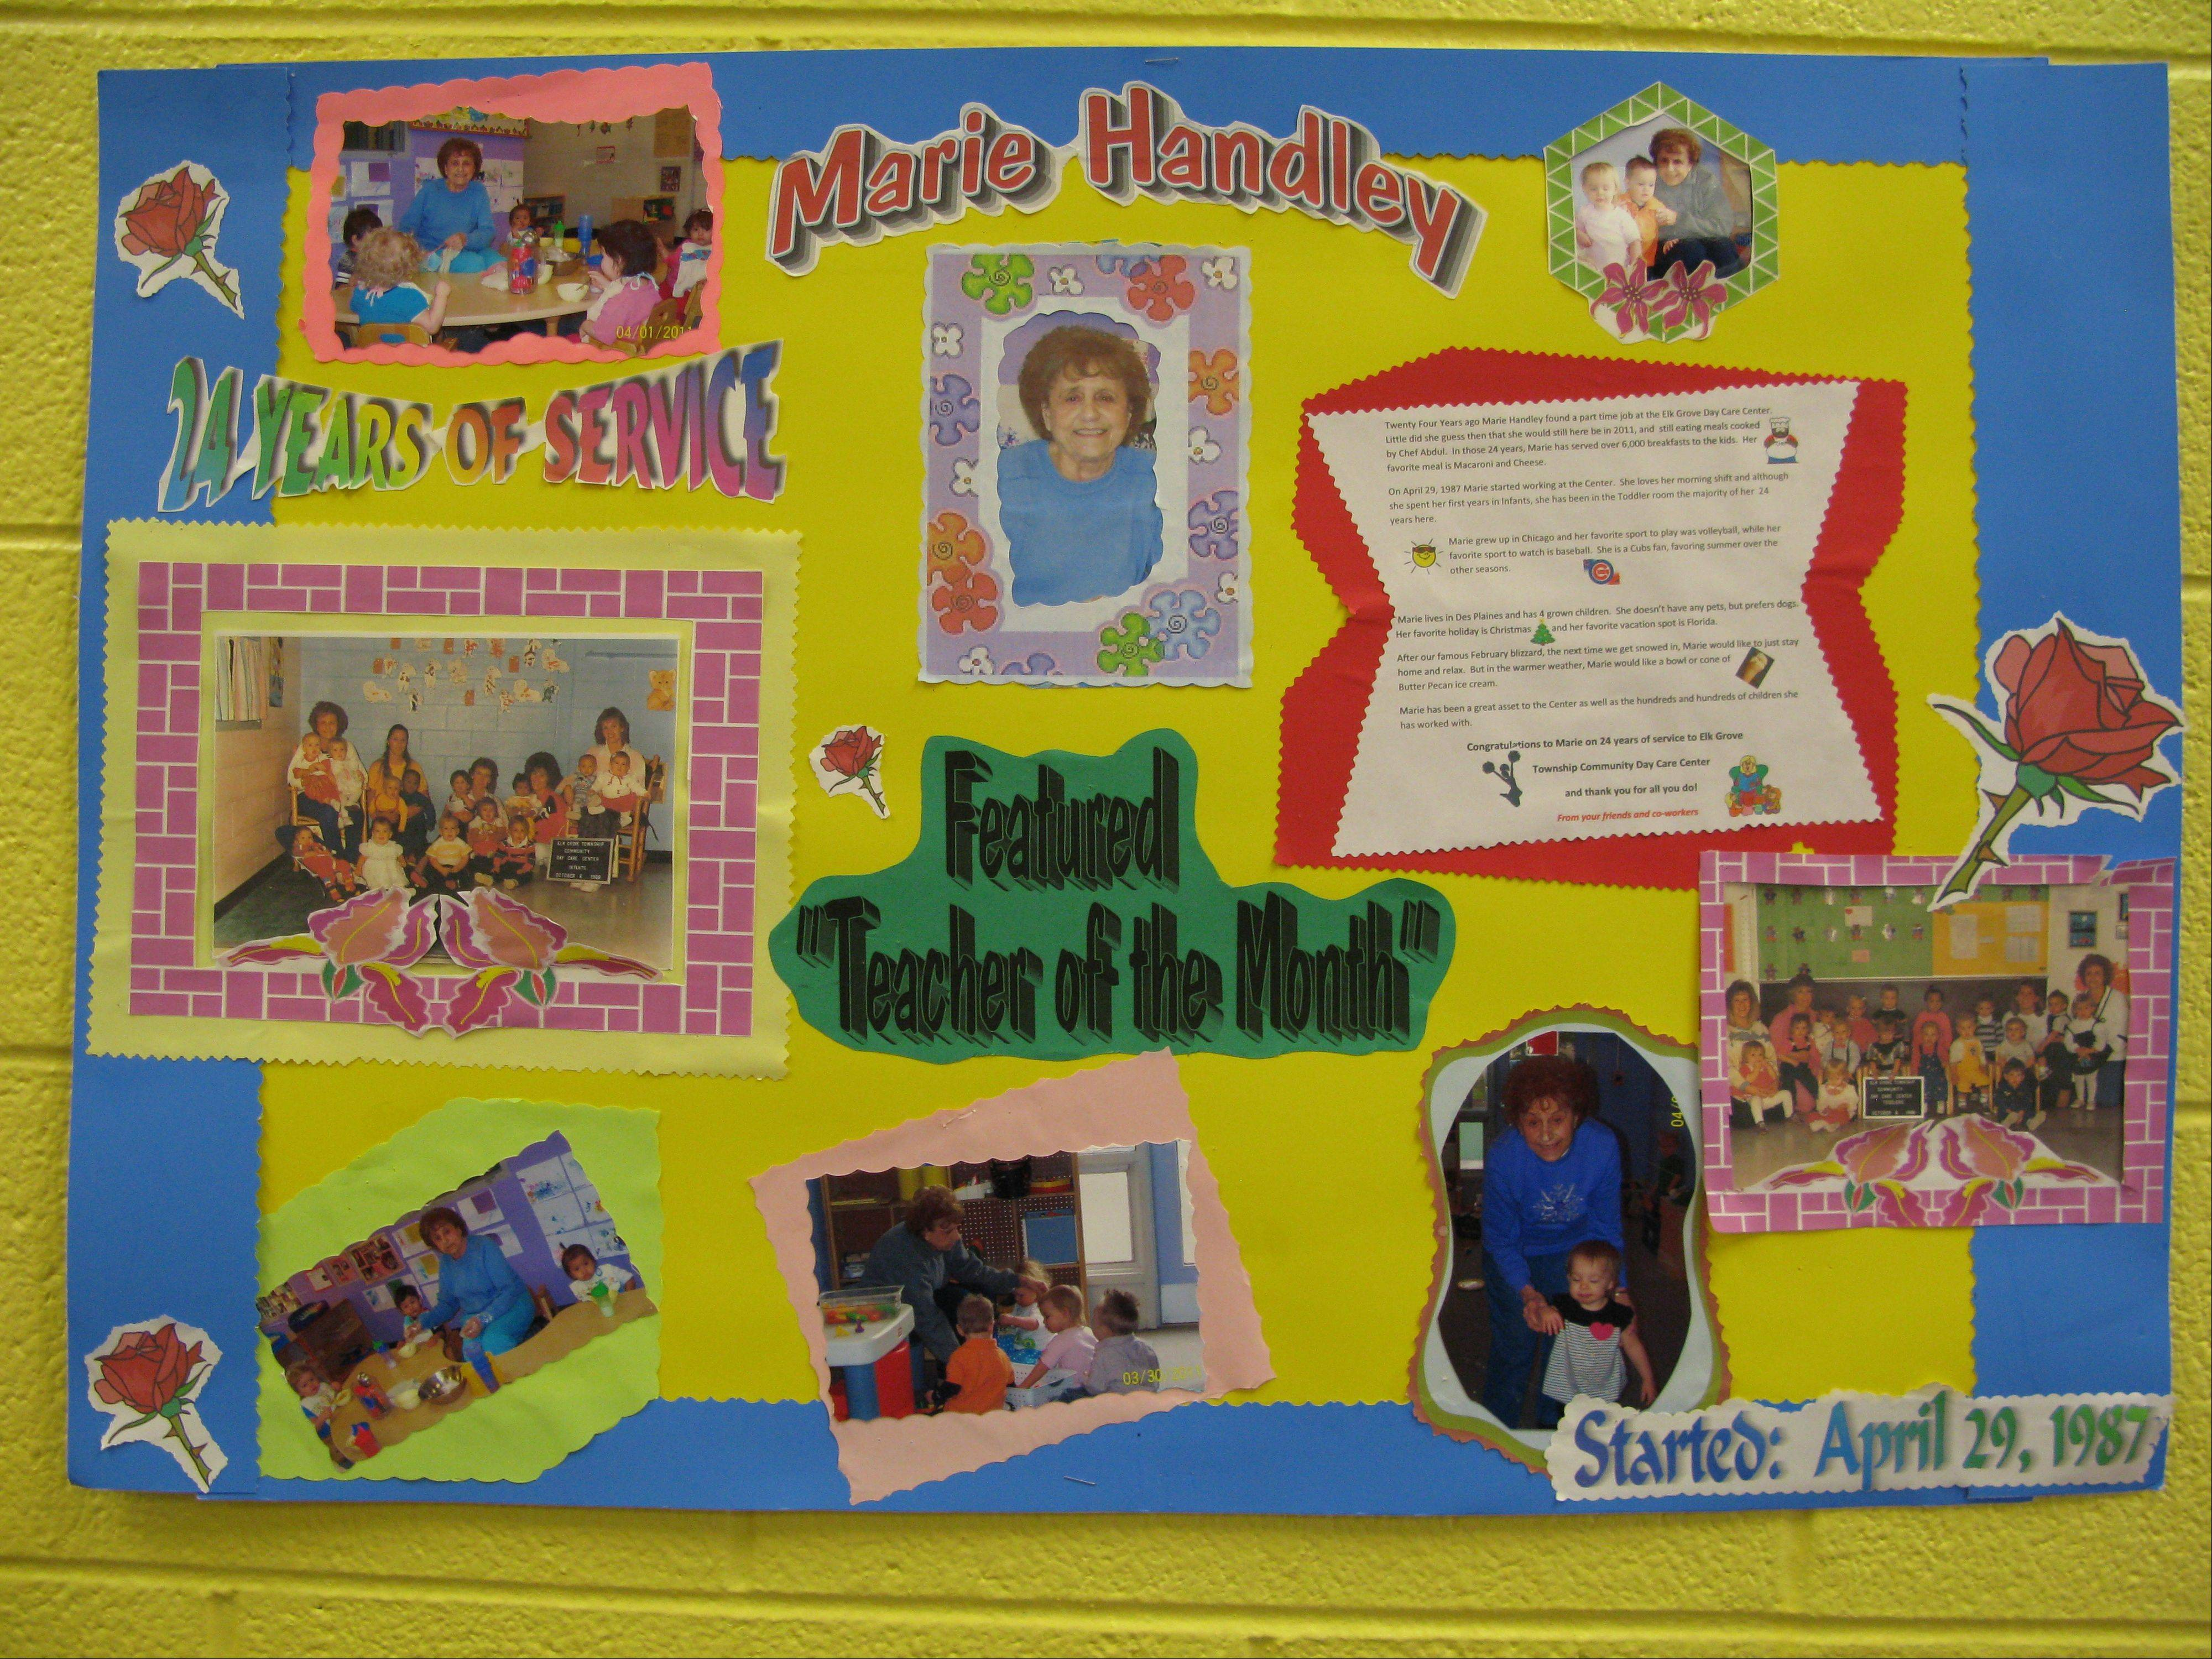 This bulletin board poster honors Marie Handley, who retired Wednesday after working 26 years at the Elk Grove Township Community Day Care Center.